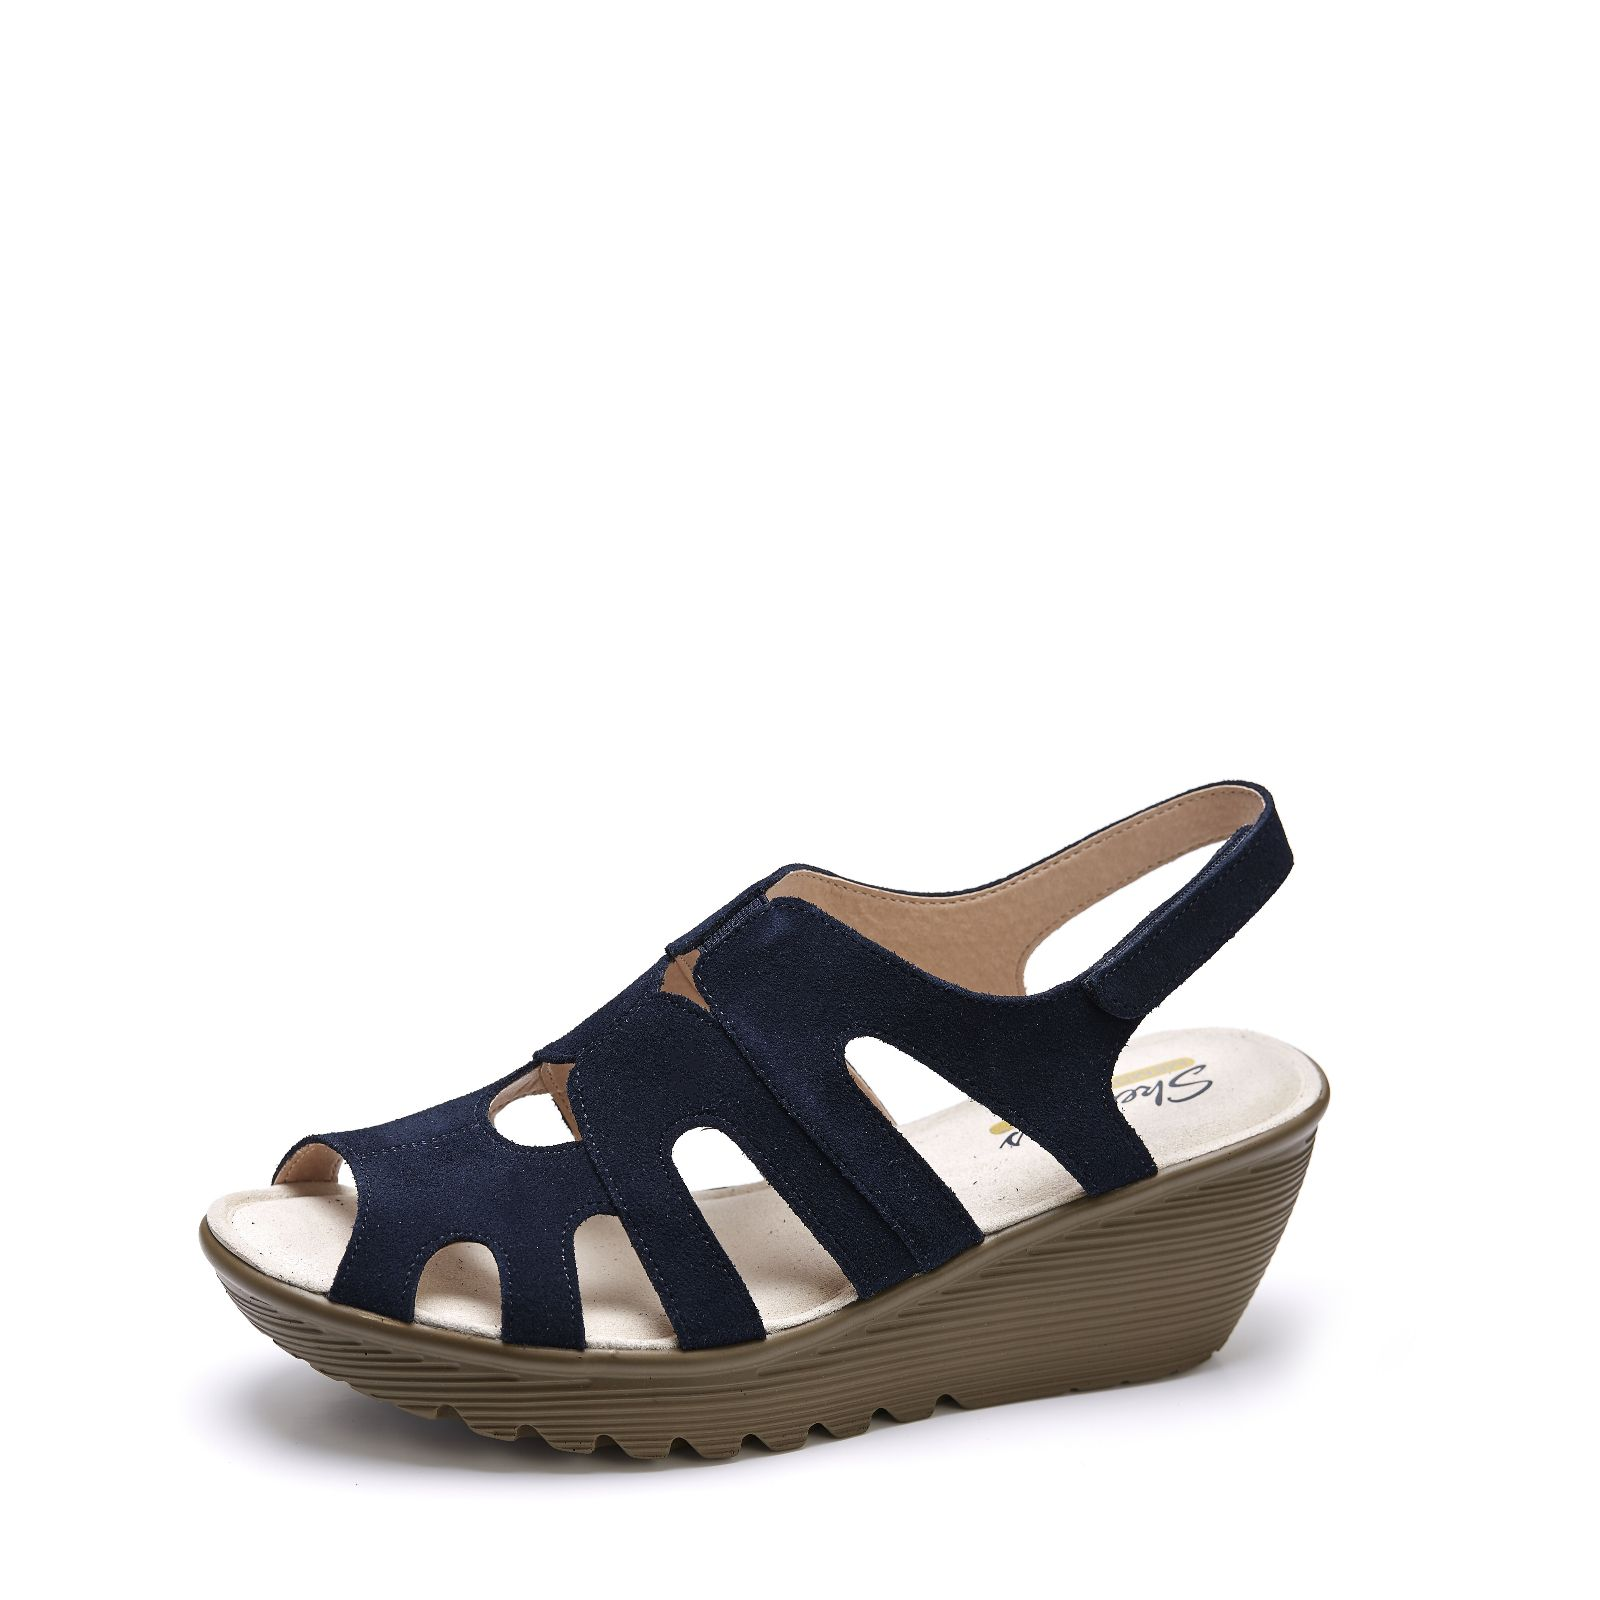 8e12b0f42867 Skechers Cali Parallel Wedge Sandal with Memory Foam - QVC UK